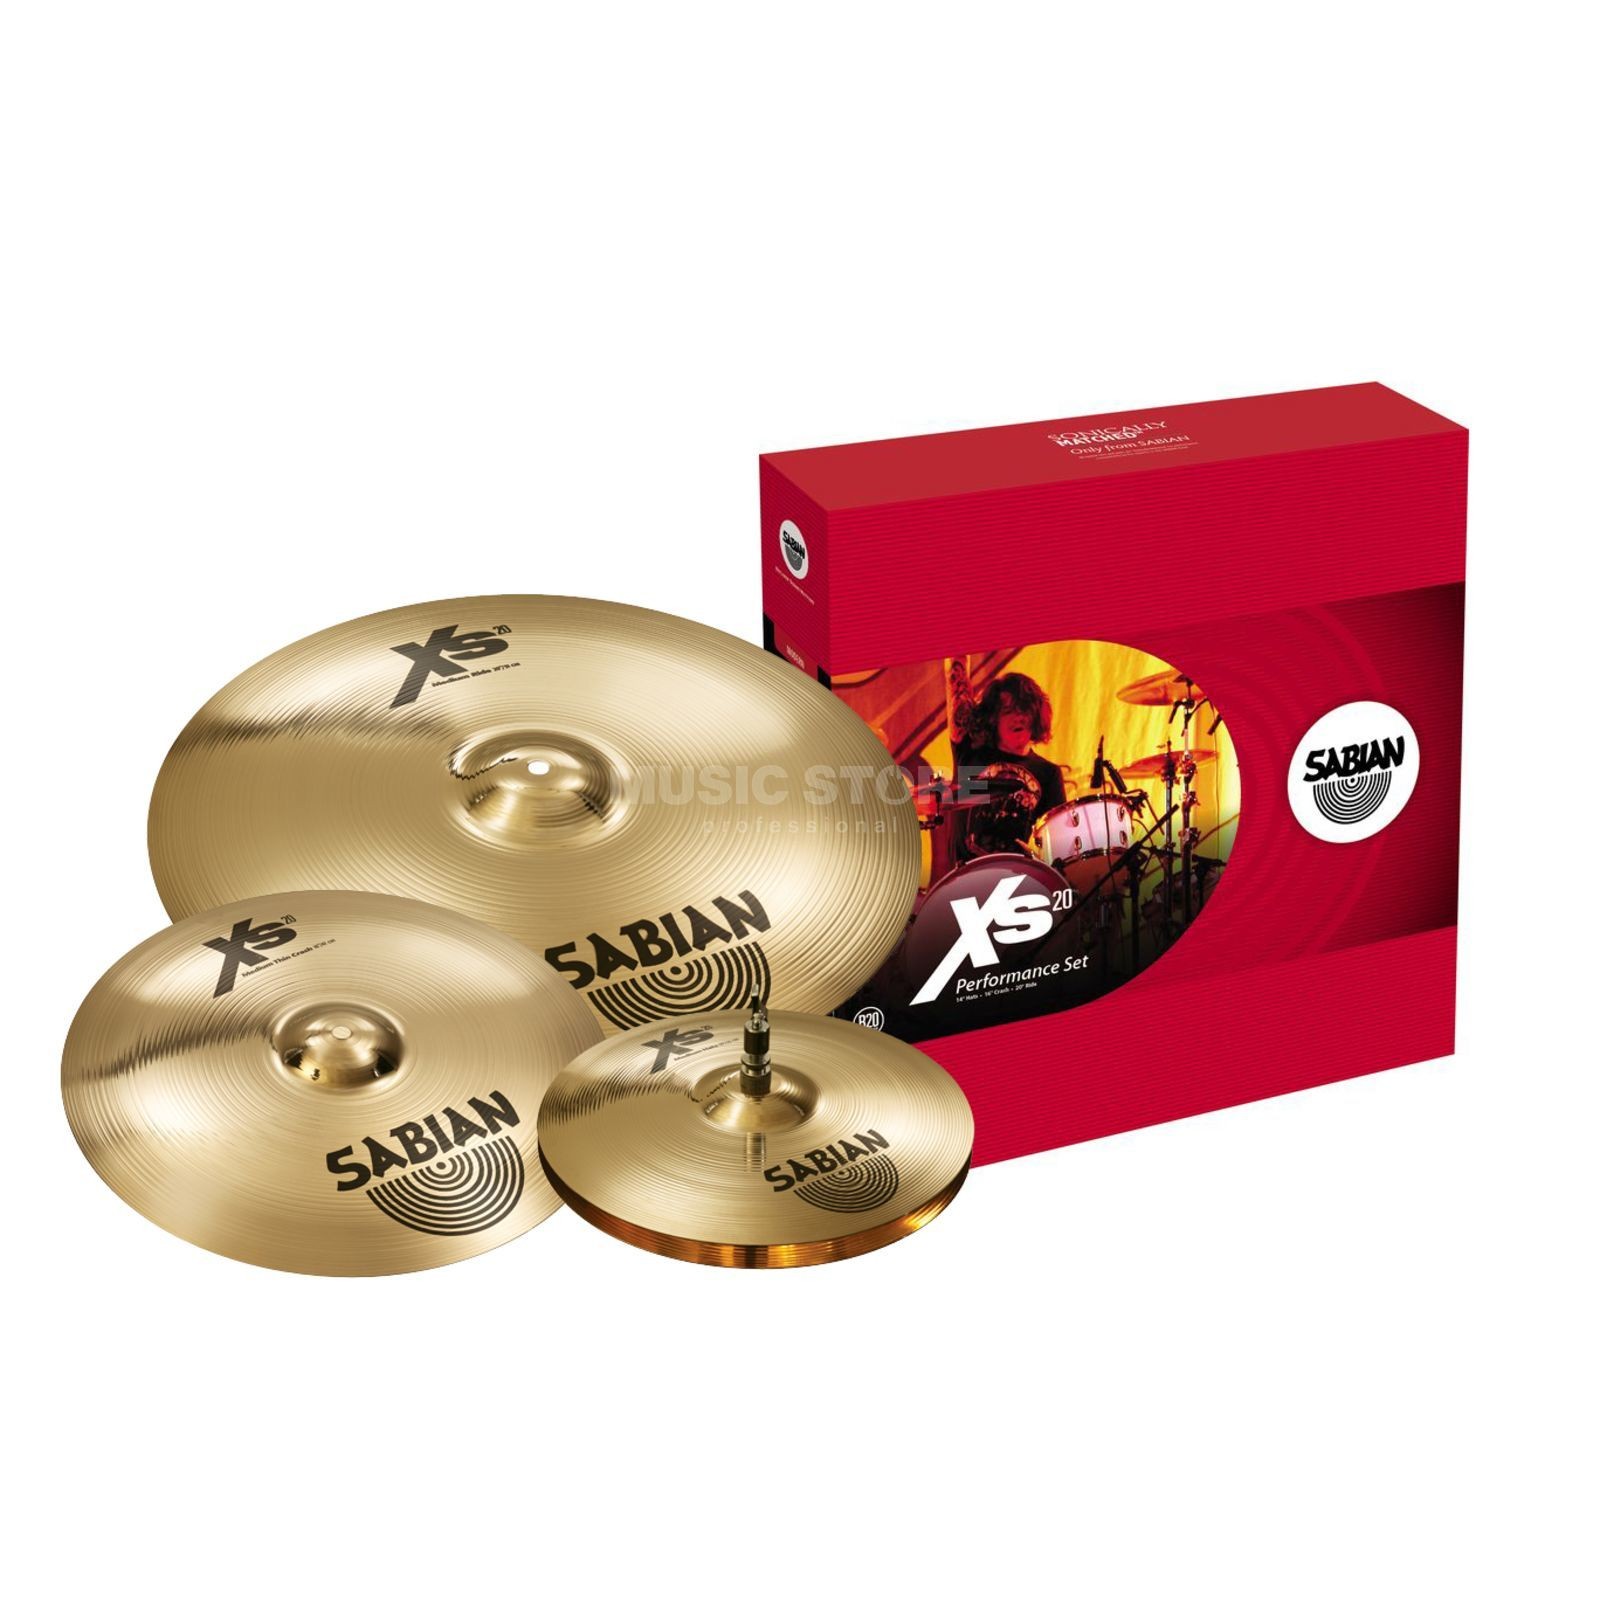 Sabian XS20 Cymbal Set performance, Brilliant Finish Productafbeelding